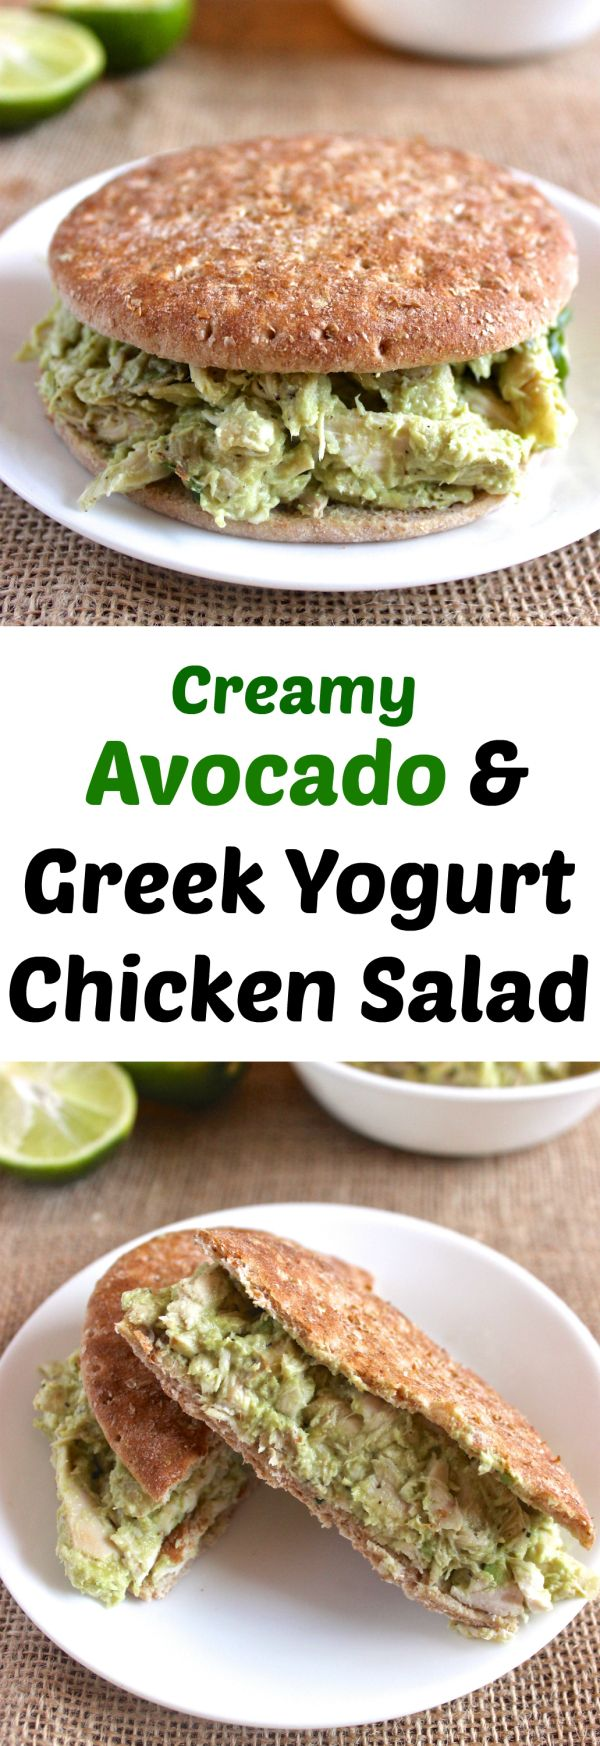 Healthy Chicken Salad made w/ NO mayo! // healthy-liv.com